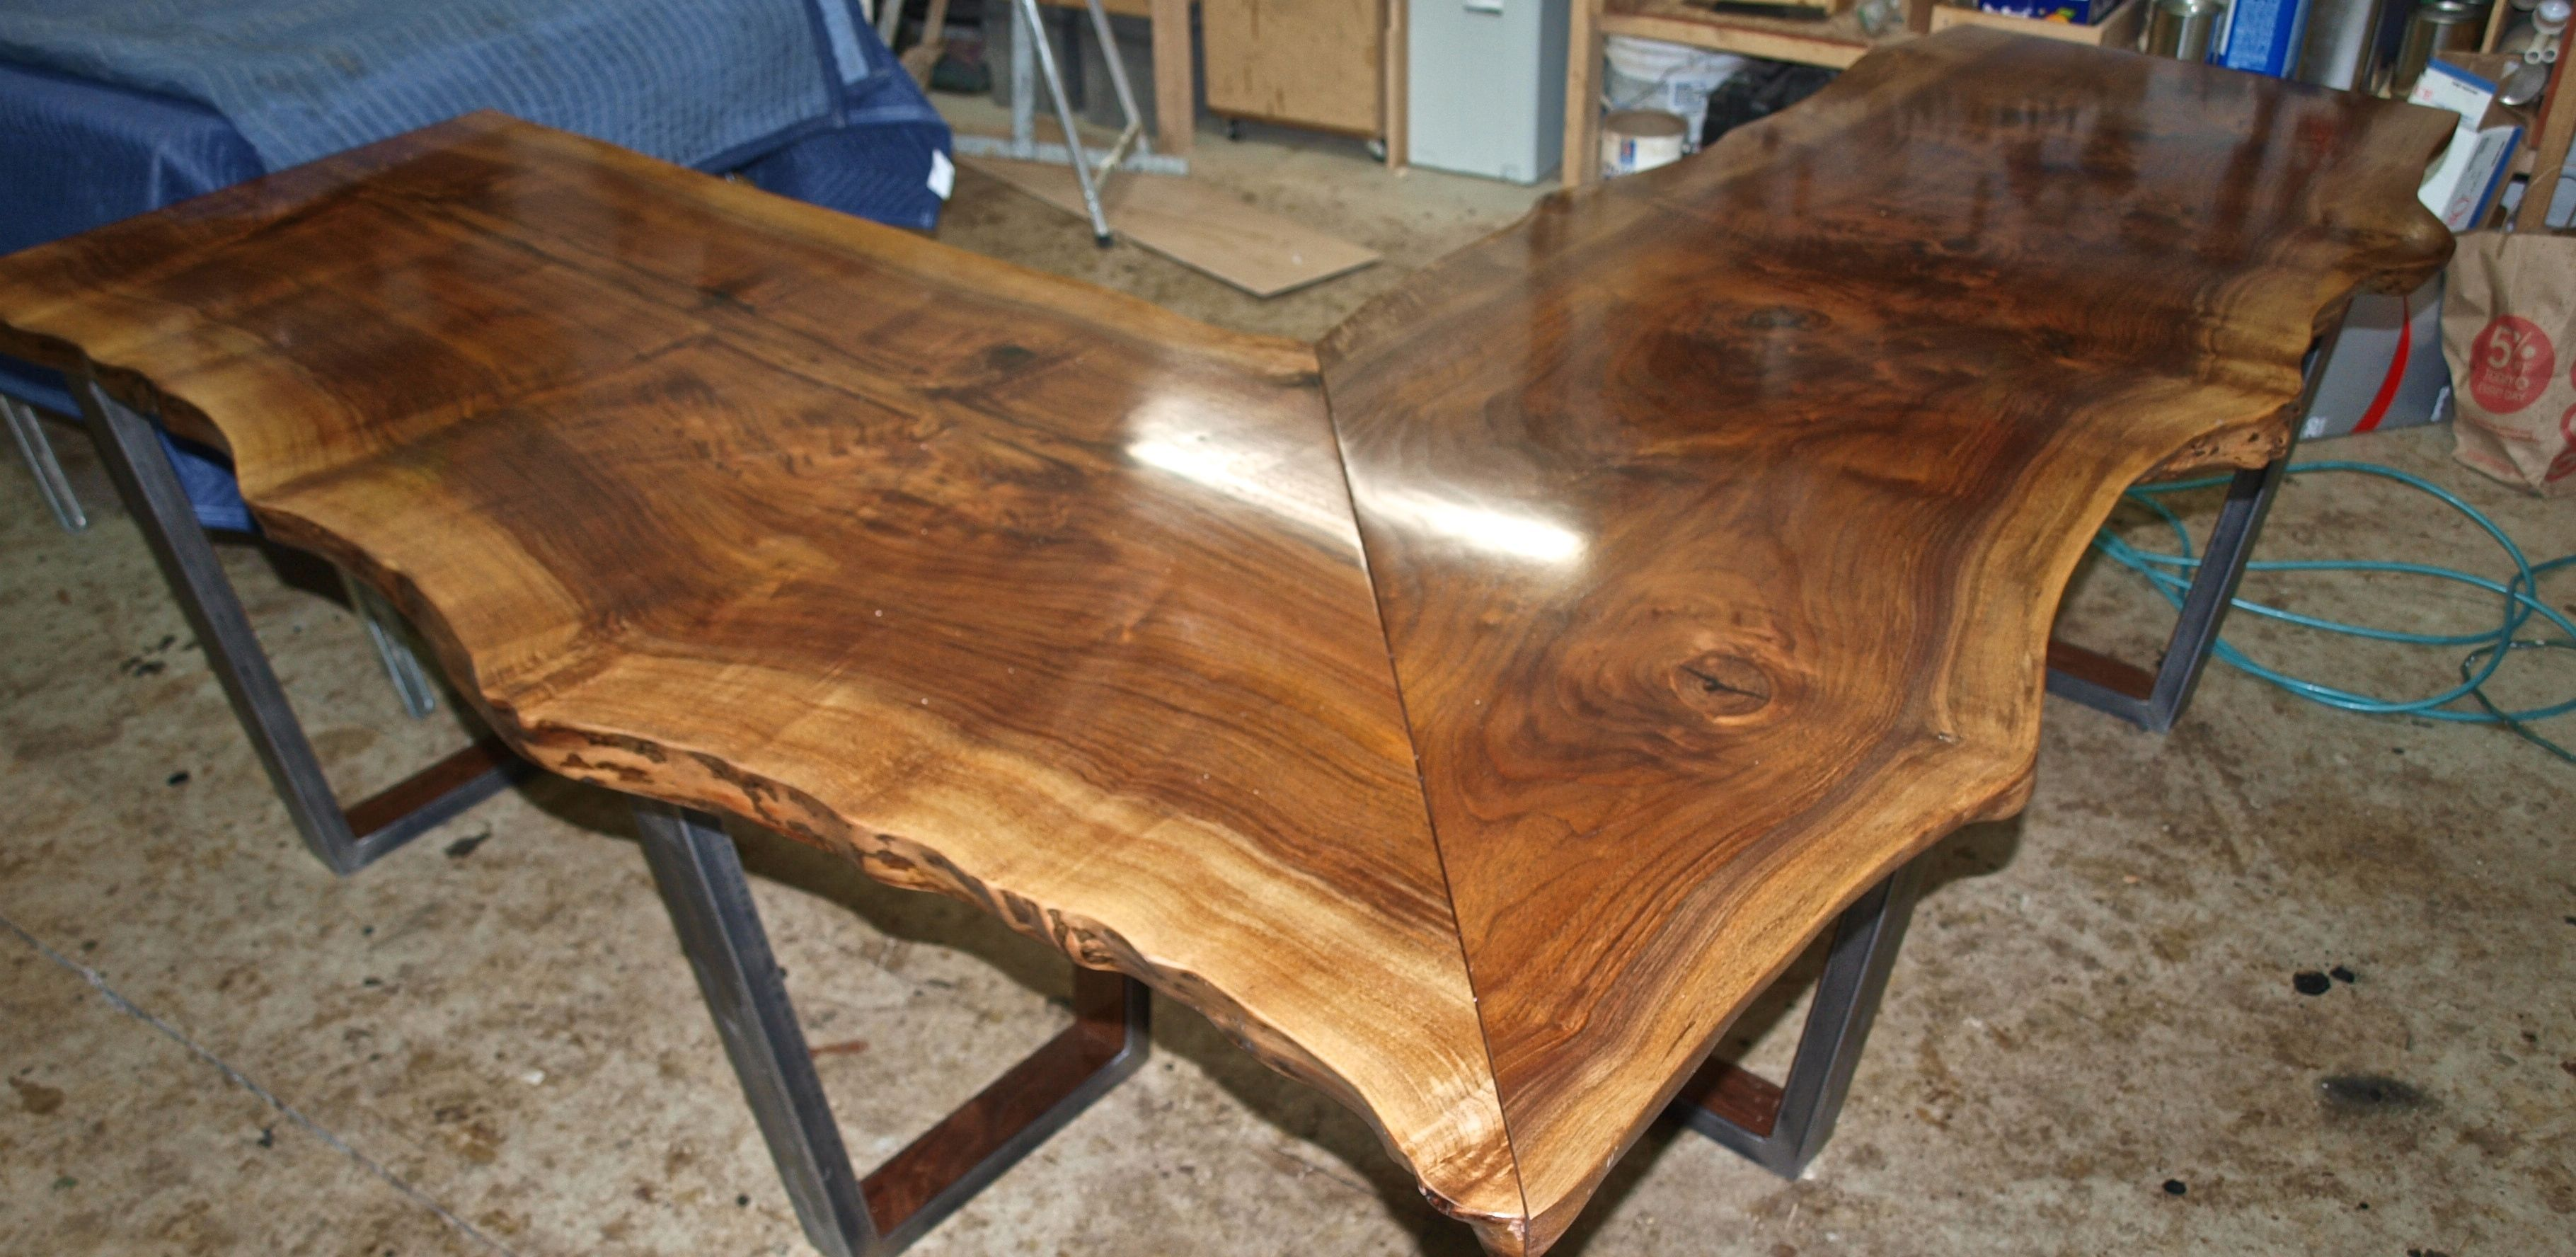 Live Edge Walnut L Shaped Desk L Shaped Desk Live Edge Desk Wood Corner Desk